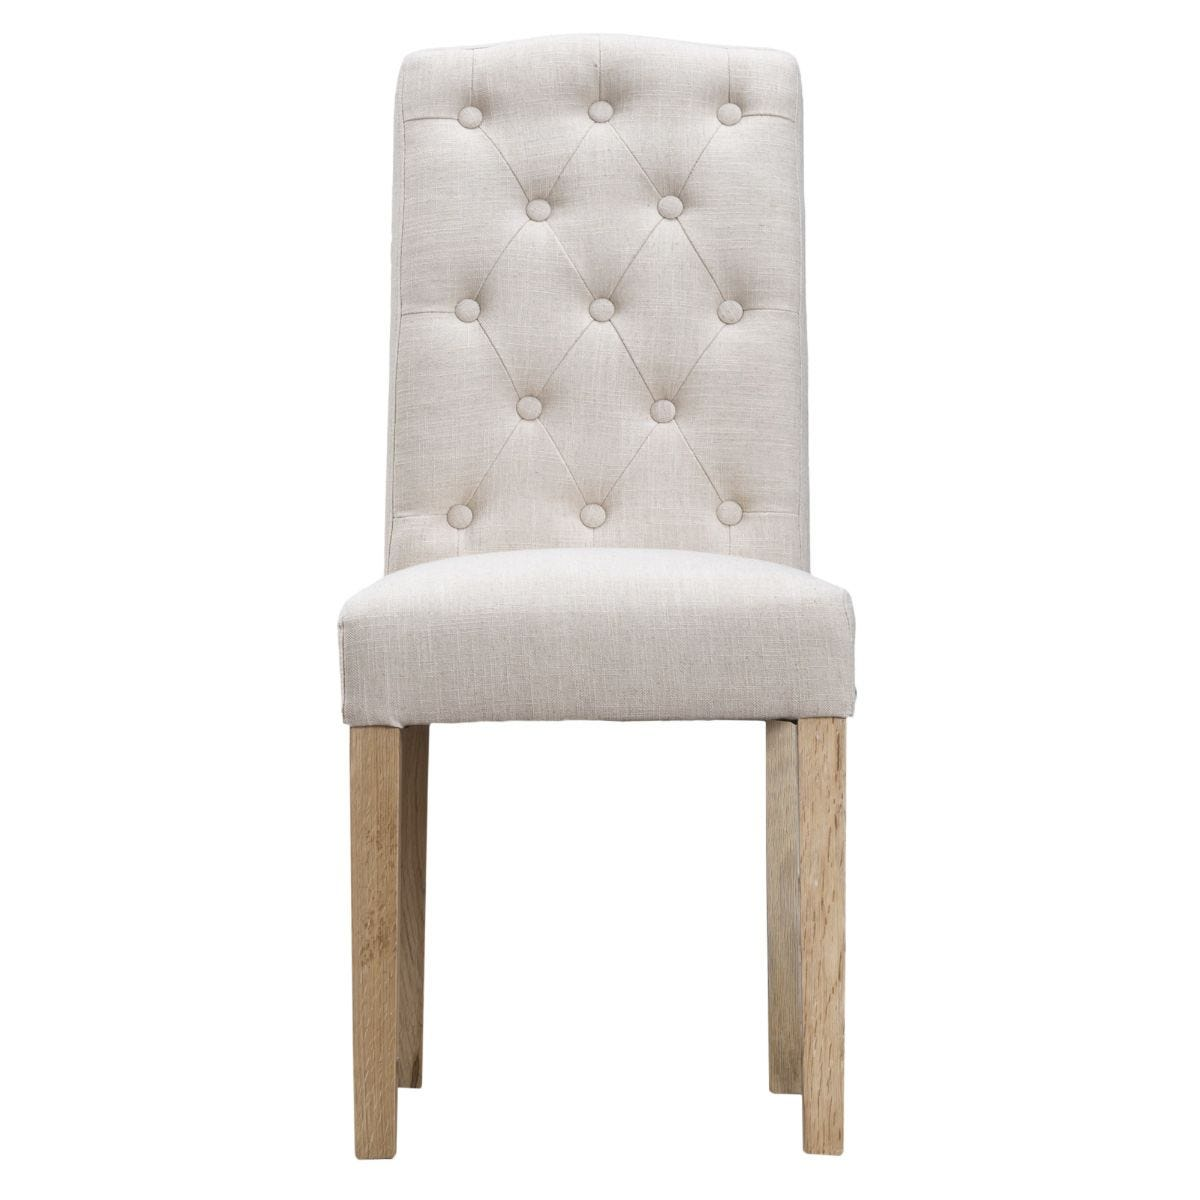 Set of 2 Button Back Luxury Dining Chairs - Beige